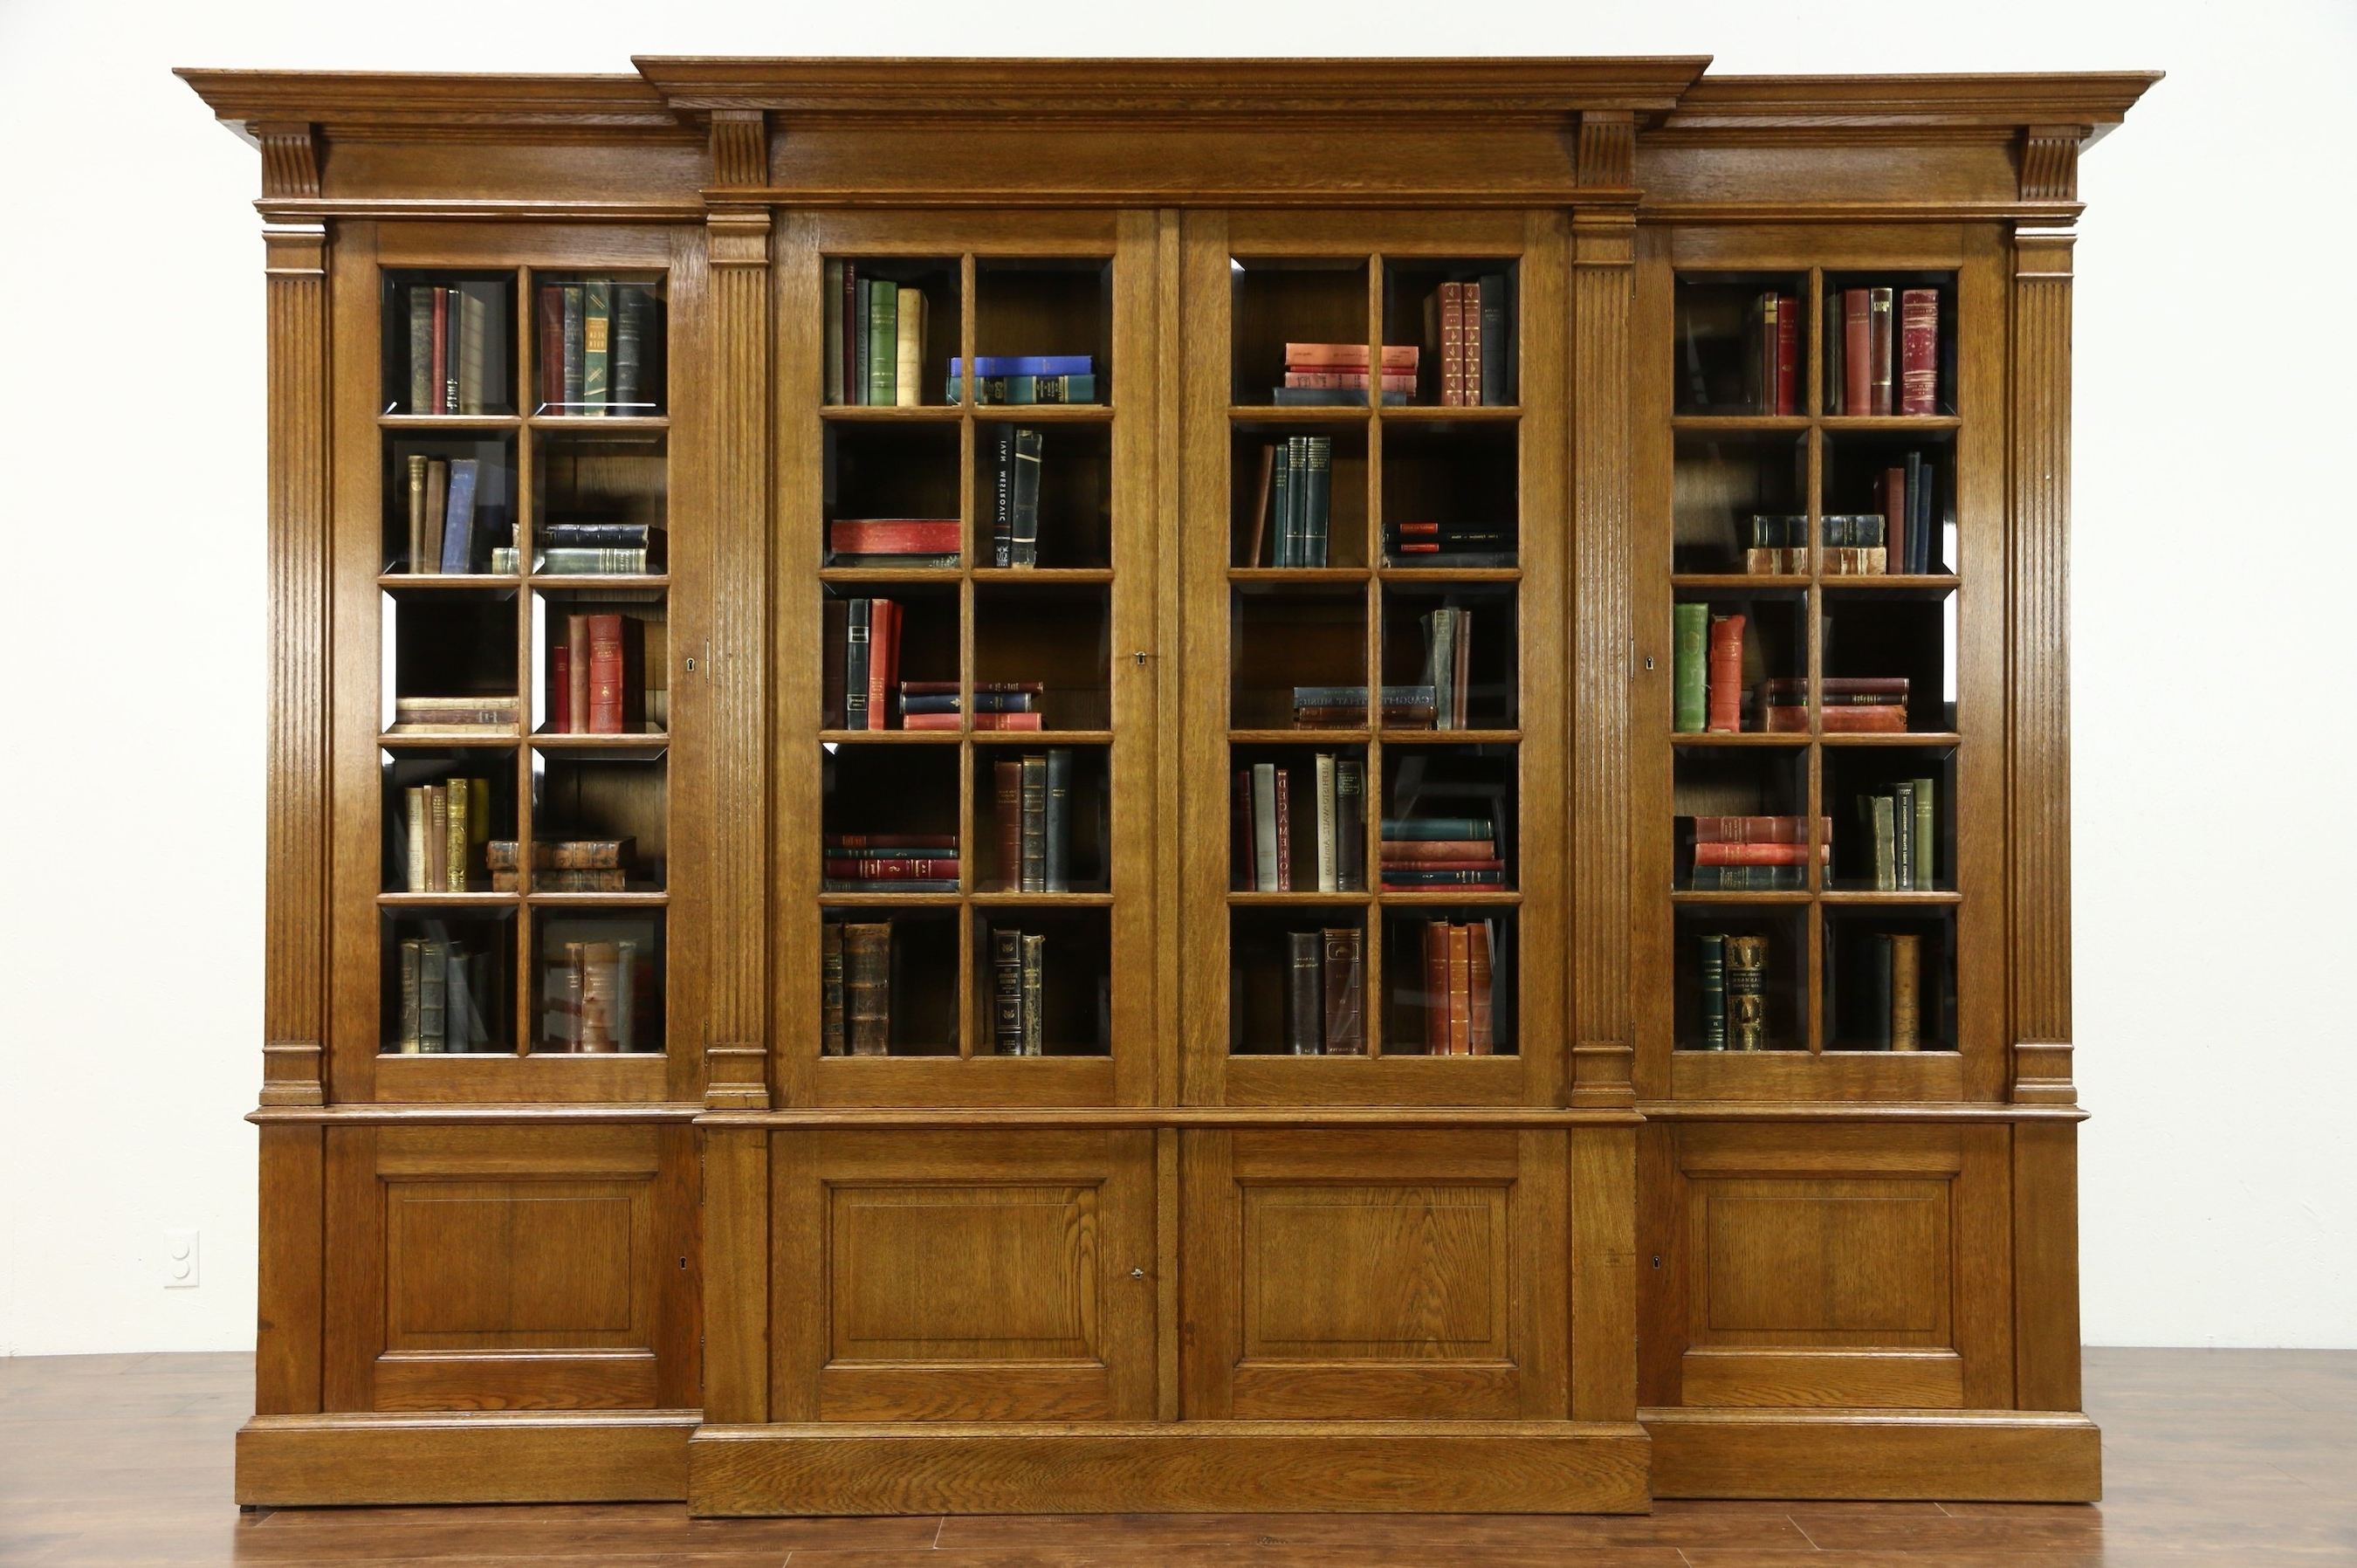 Sold – French Oak 1920's Antique 10' Library Bookcase, Beveled Intended For Most Popular Oak Library Bookcases (View 12 of 15)